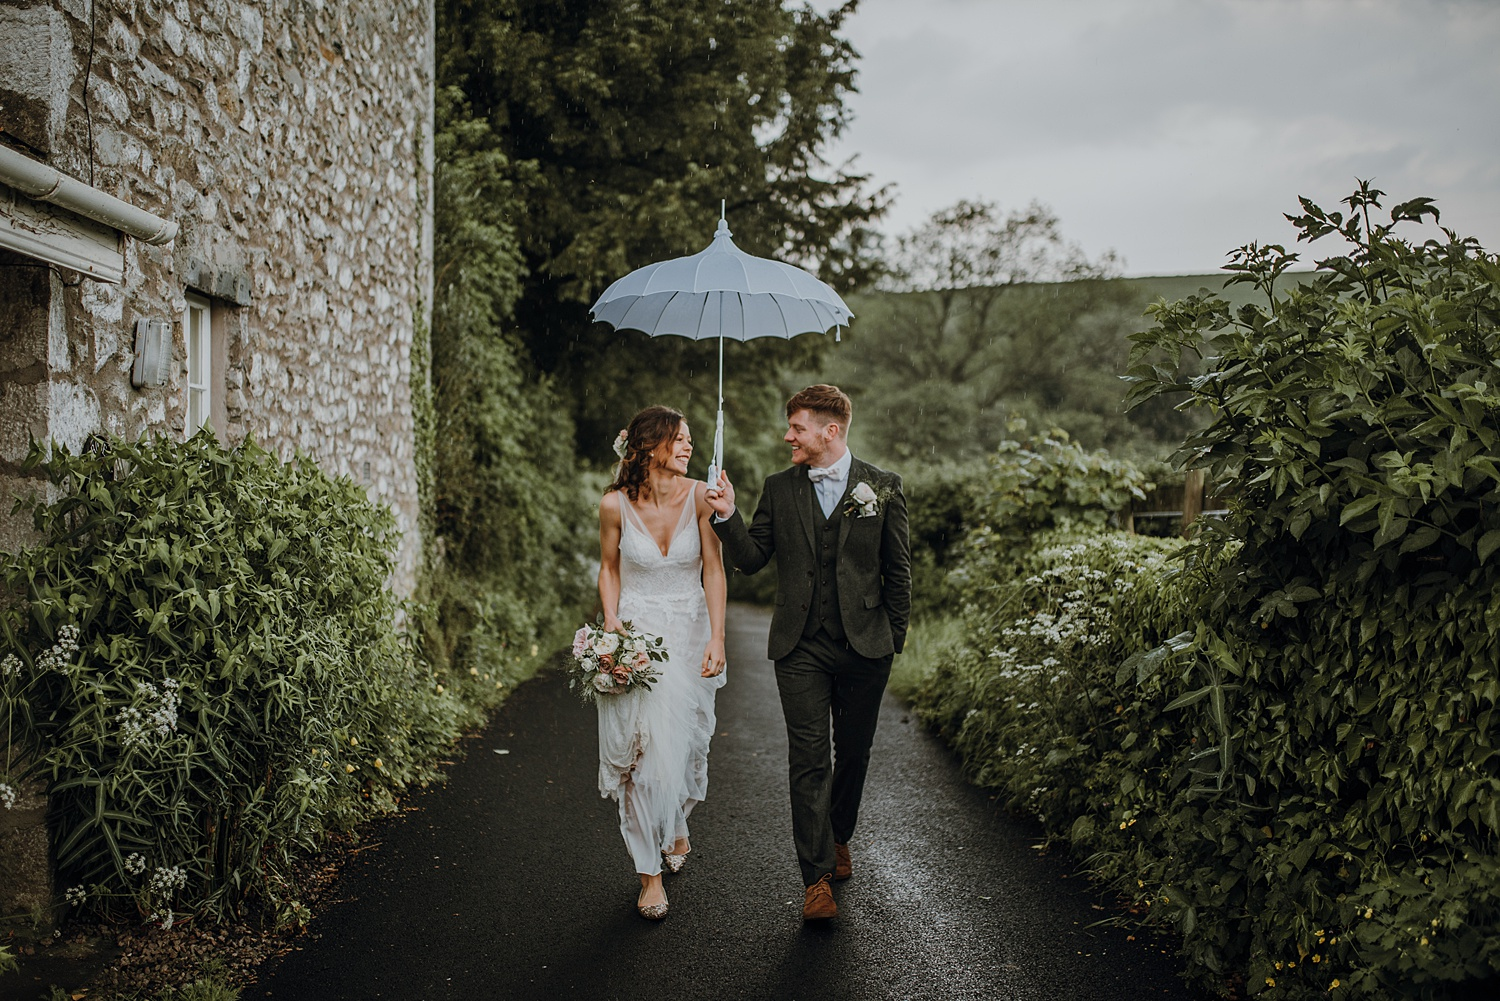 Claire-Fleck-Scottish-wedding-photography-2017__0061.jpg